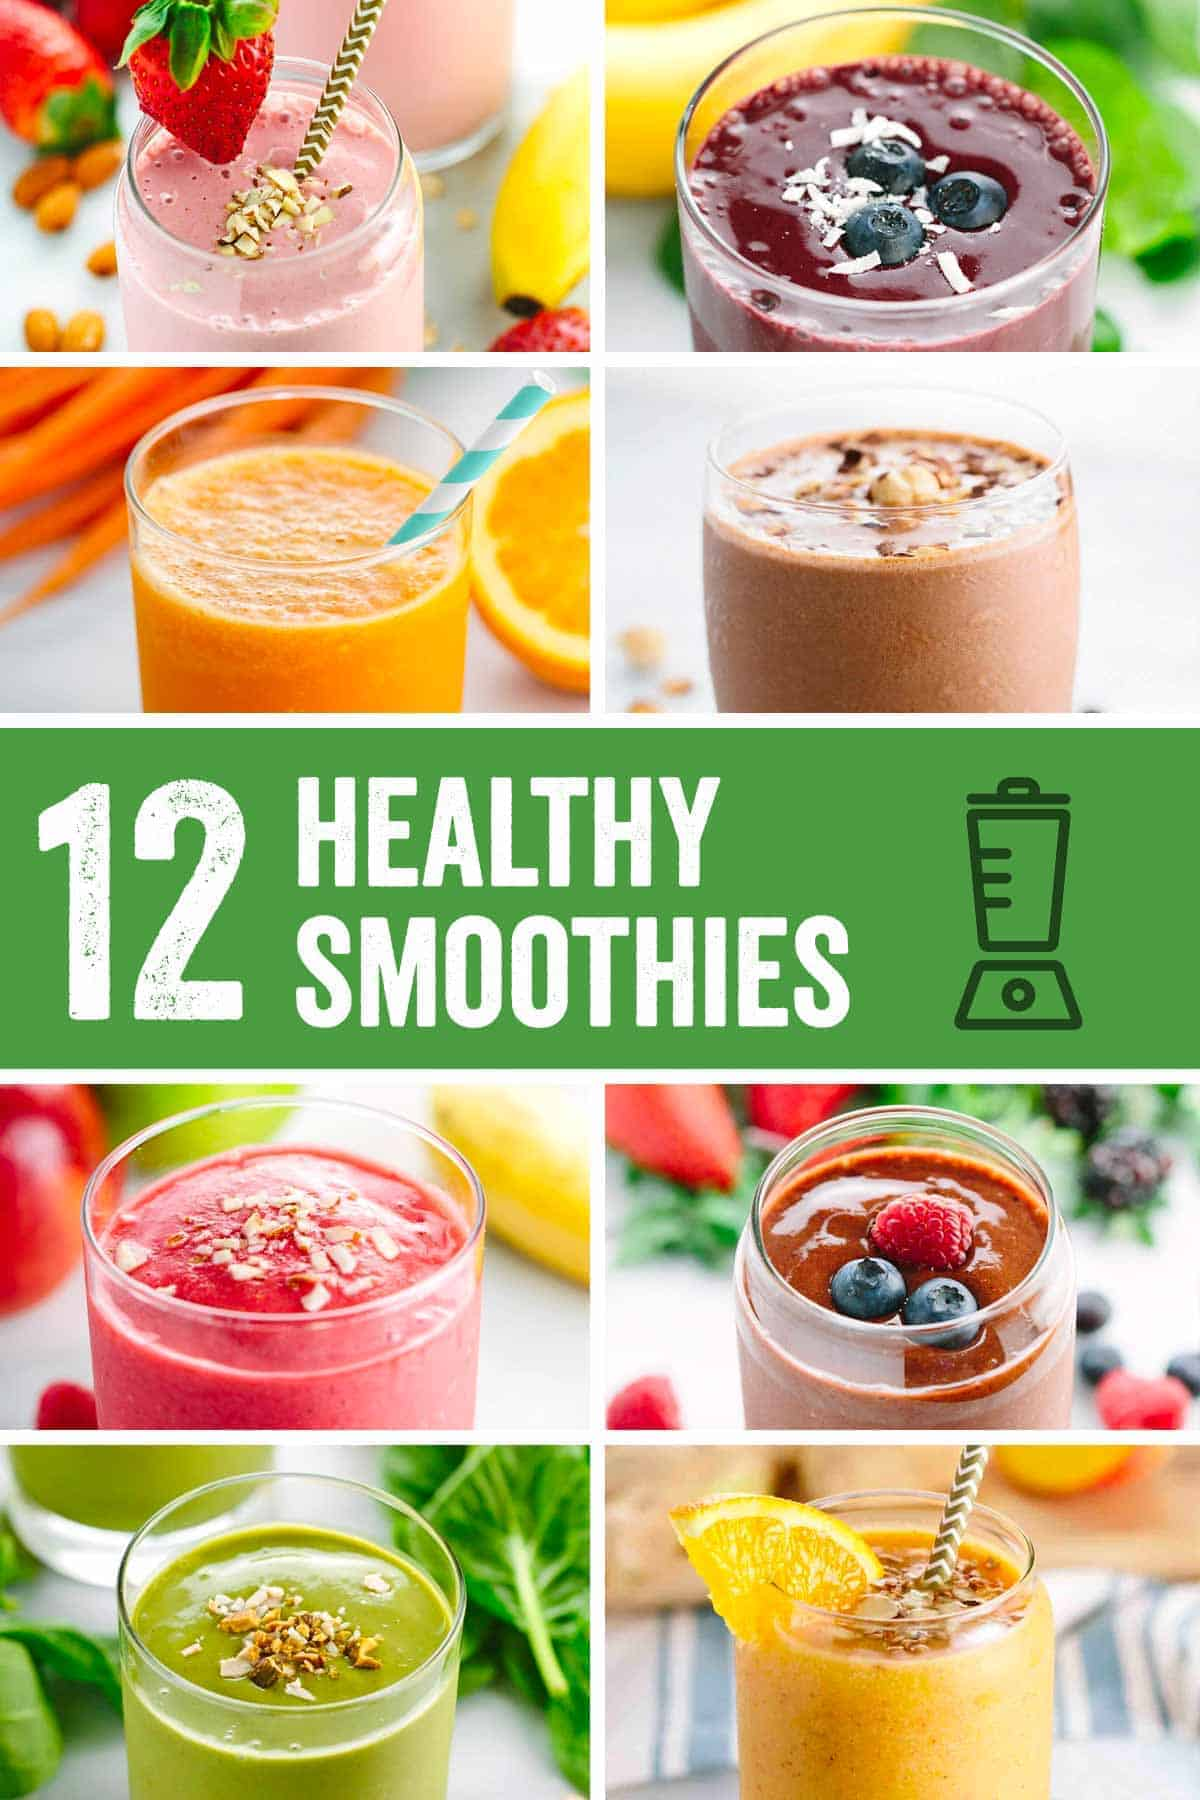 Roundup: Healthy Smoothie Recipes - A refreshing collection of five-minute breakfast or snack smoothie recipes to energize your day!